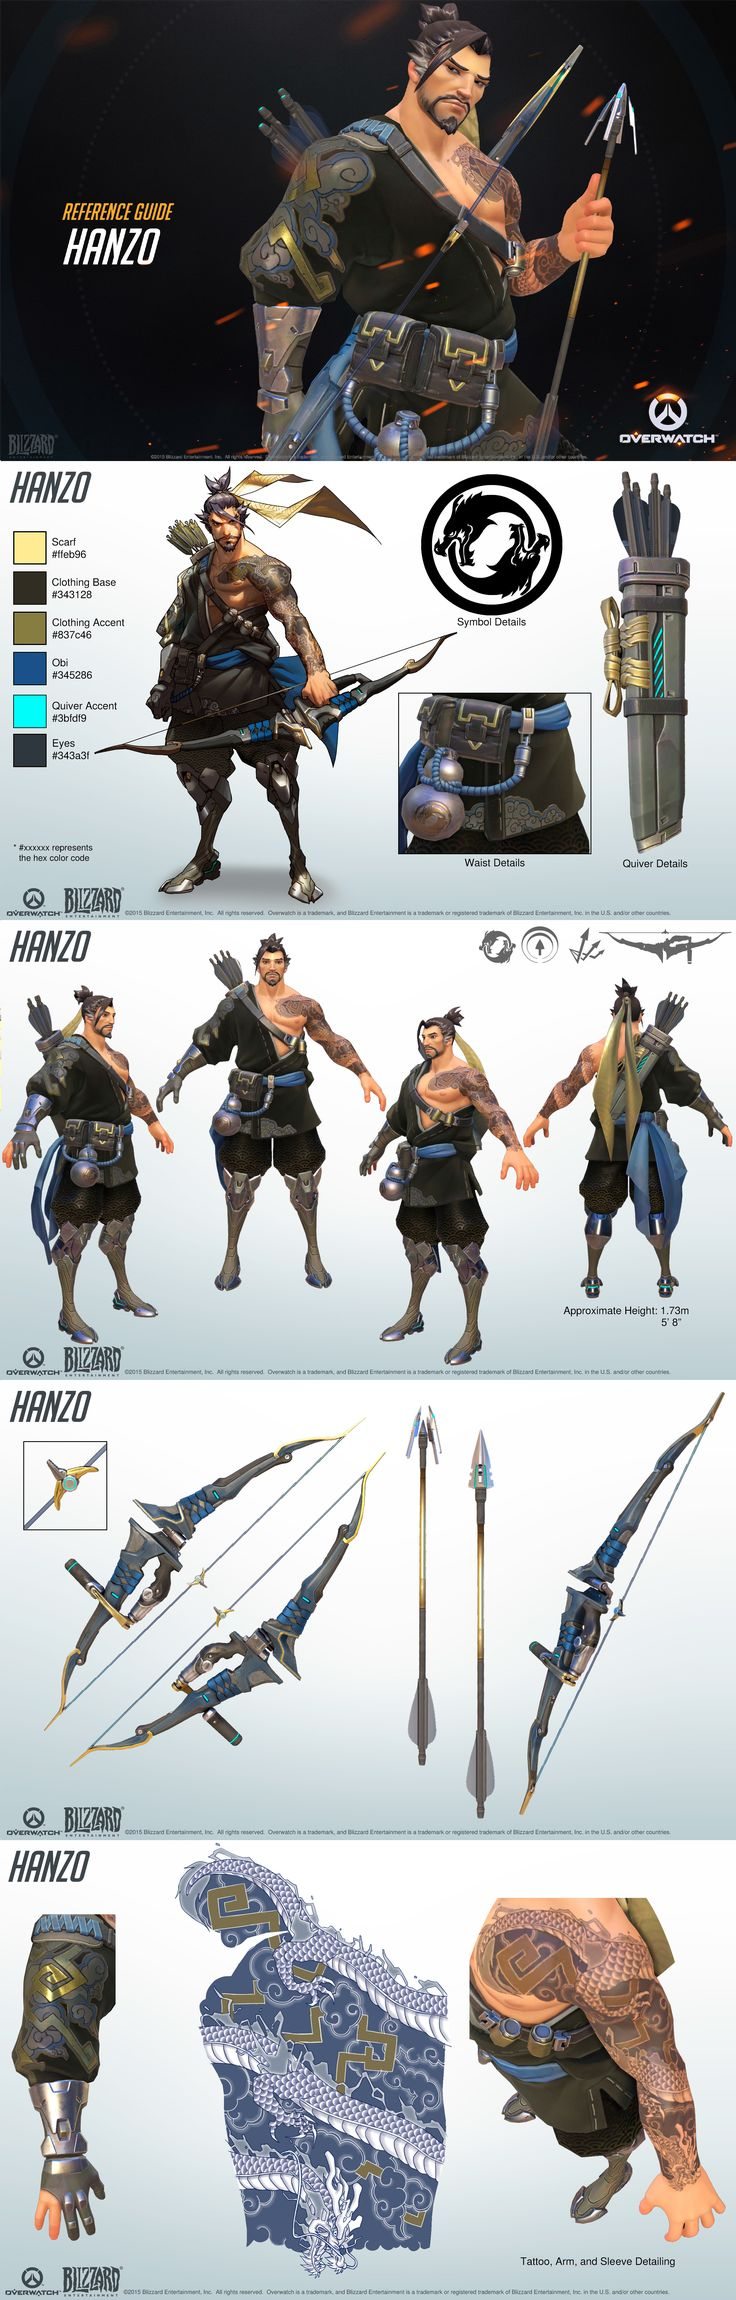 Character Design Chart : Overwatch hanzo reference guide character designs